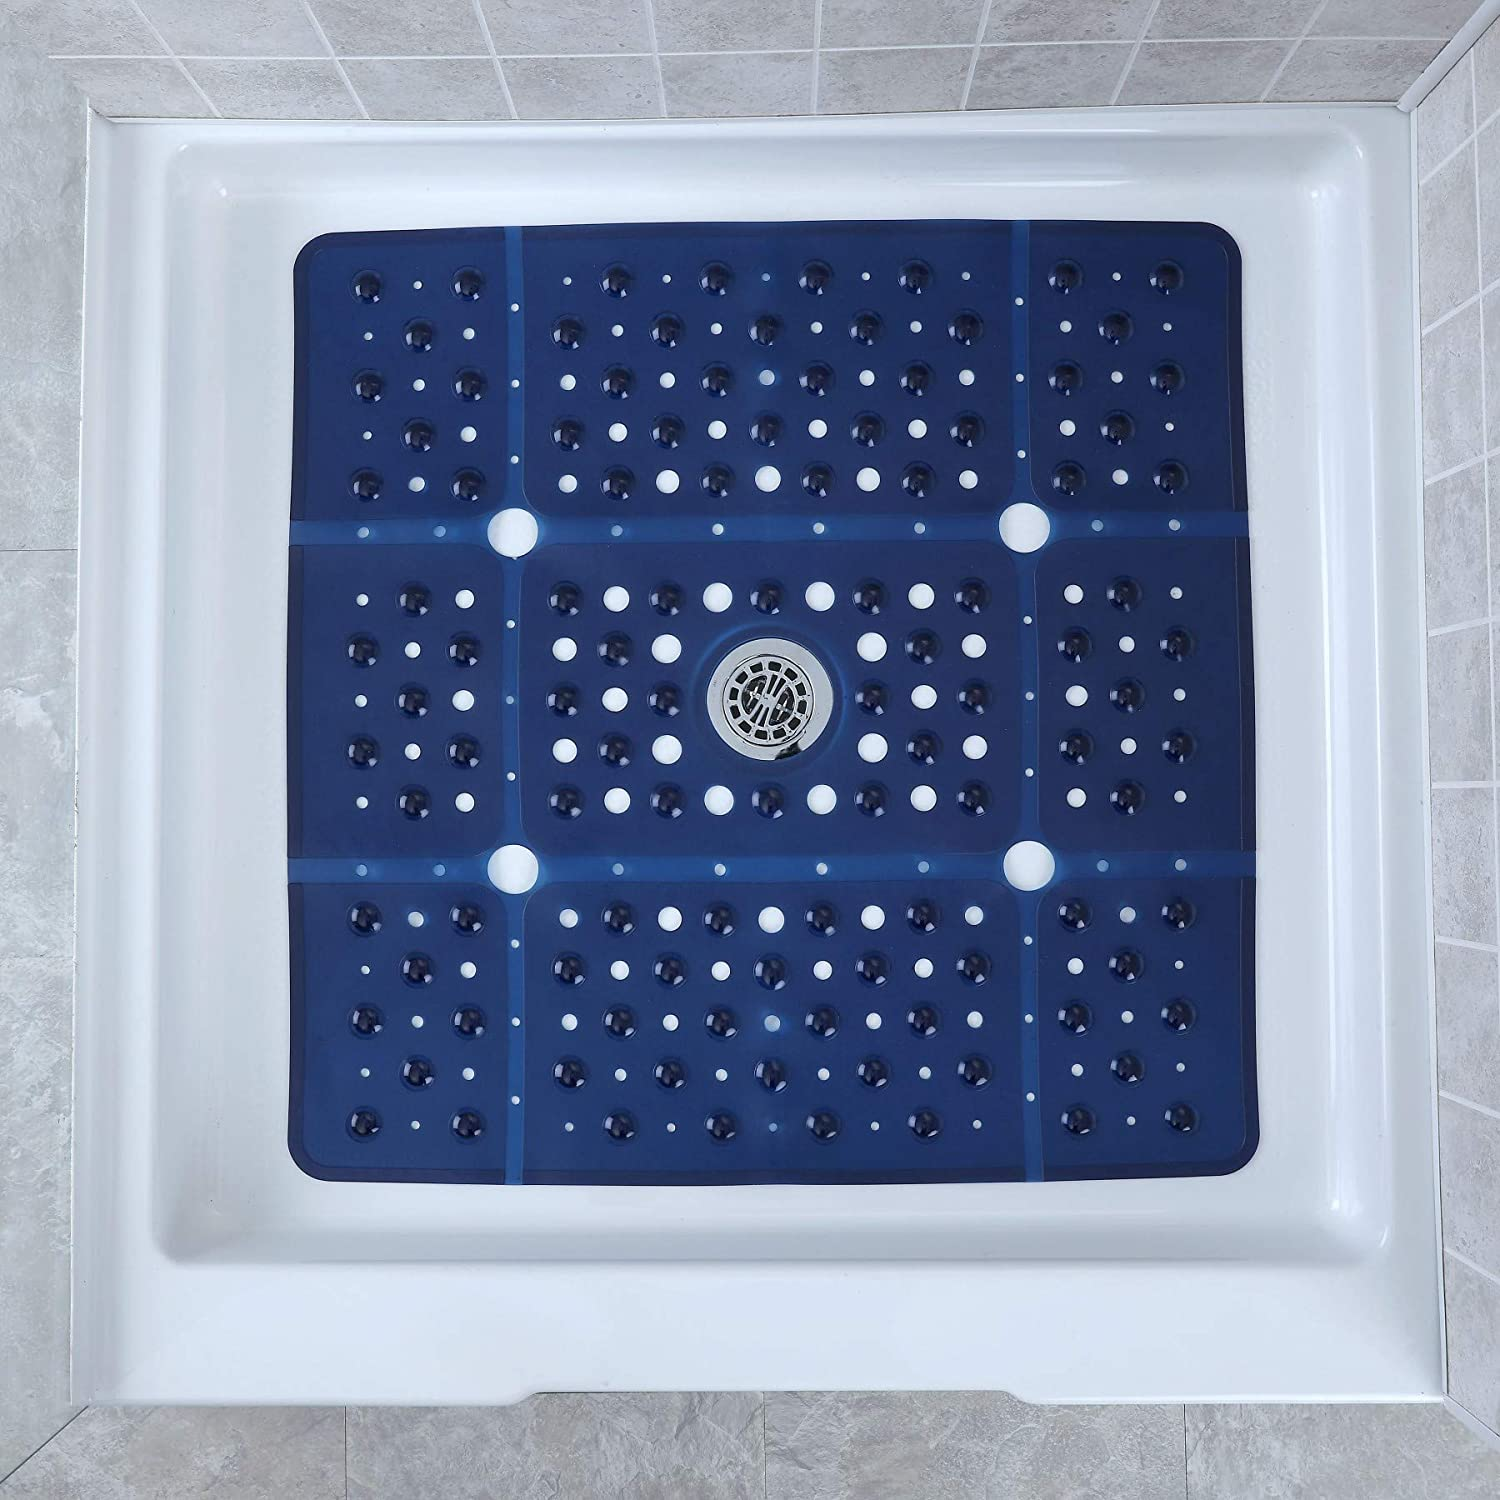 SlipX Solutions Extra Large Square Shower Mat Provides 65% More Coverage Non Slip Traction 27 Sides 100 Suction Cups Great Drainage Navy